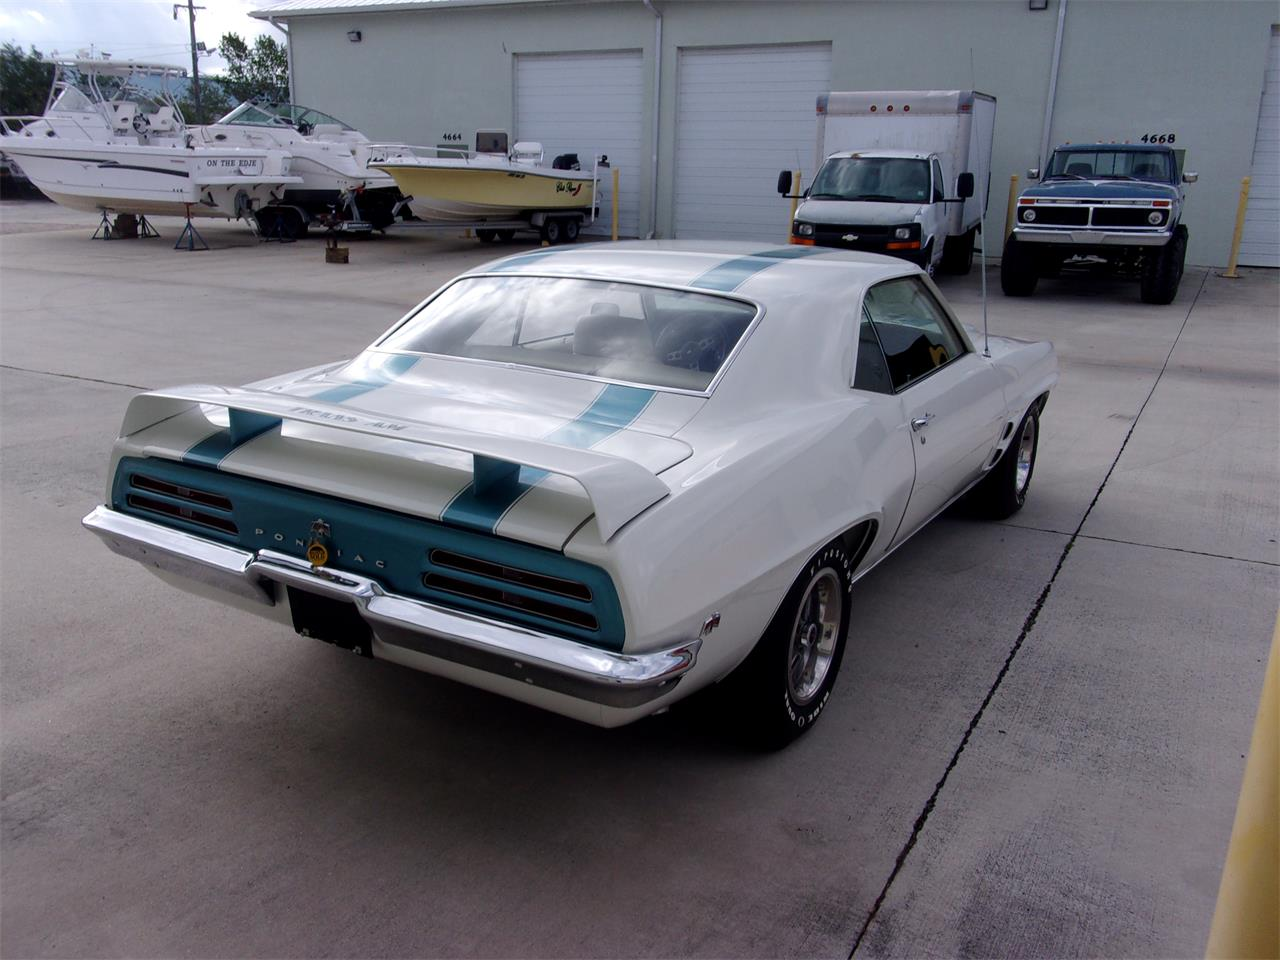 Large Picture of Classic '69 Pontiac Firebird Trans Am located in Stuart Florida Offered by Pirate Motorcars of Treasure Coast LLC - QIU7